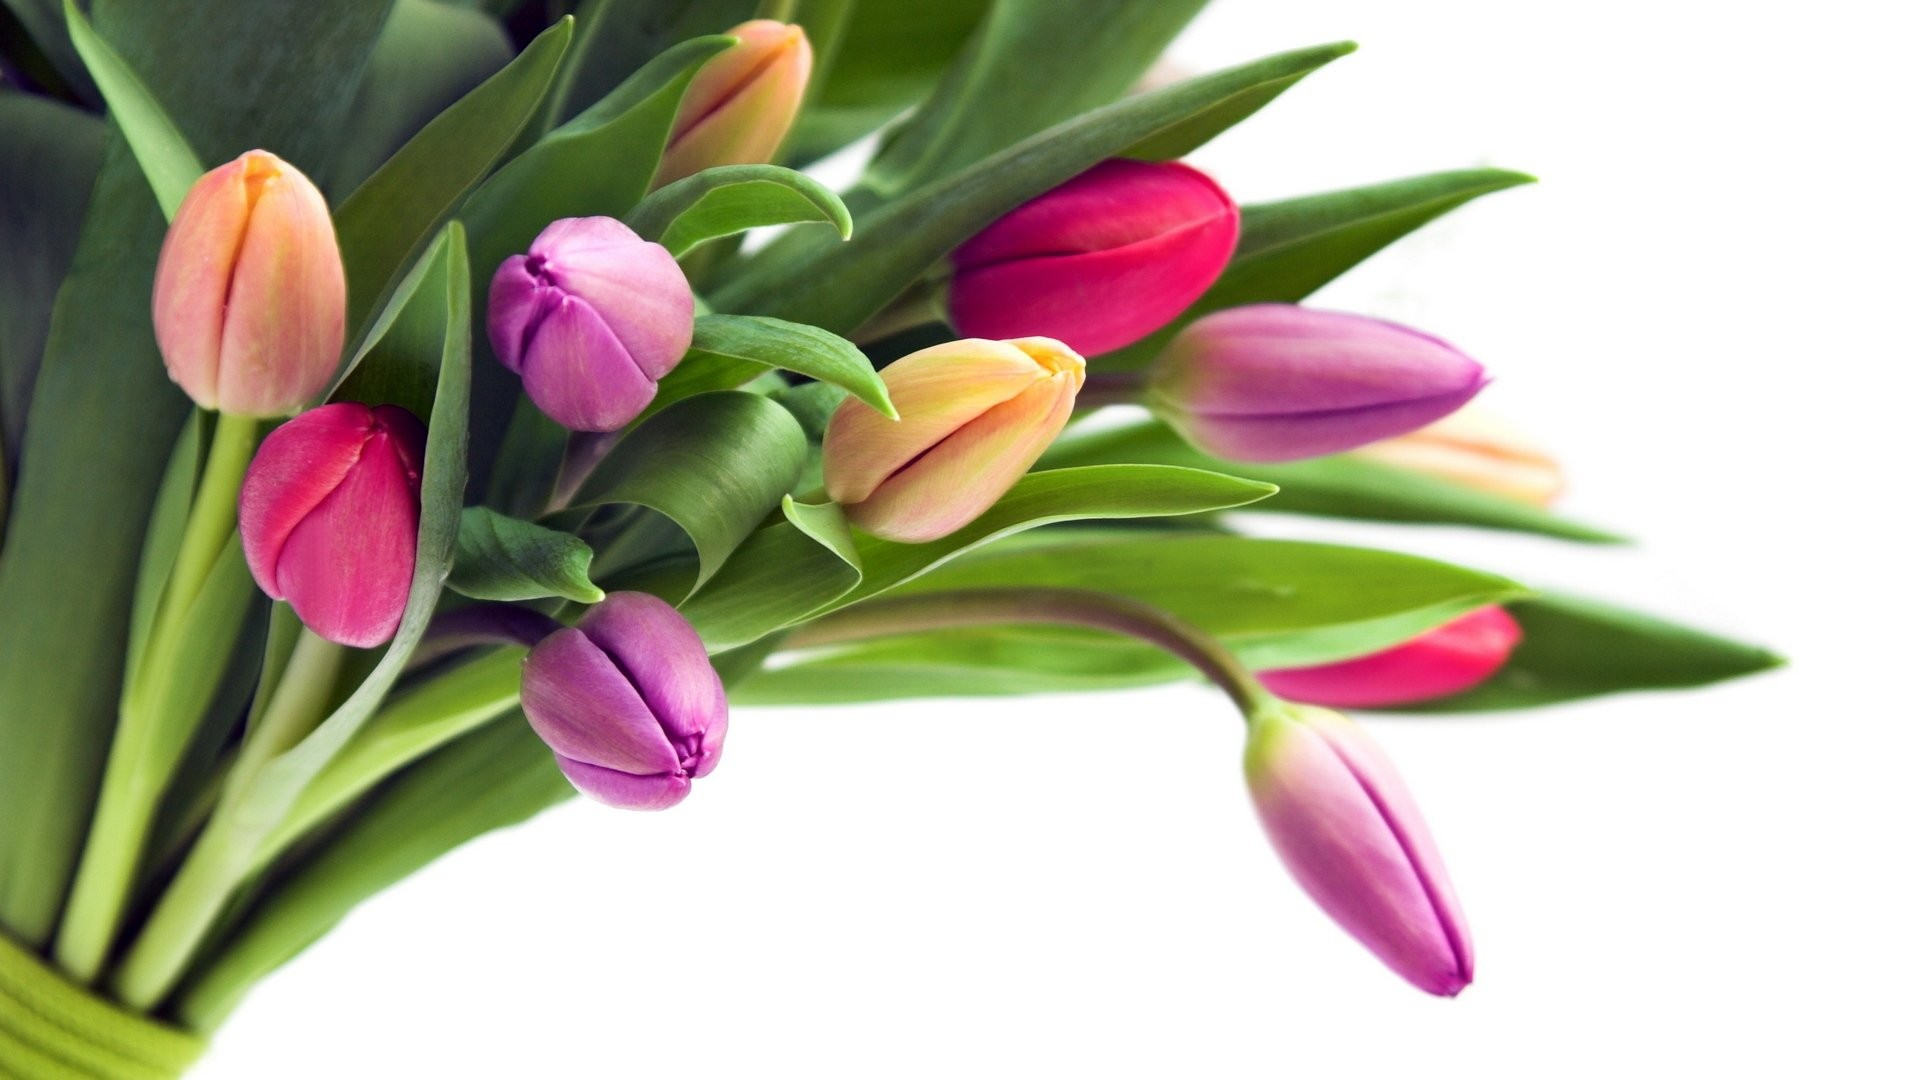 International Women's Day Flowers image free download